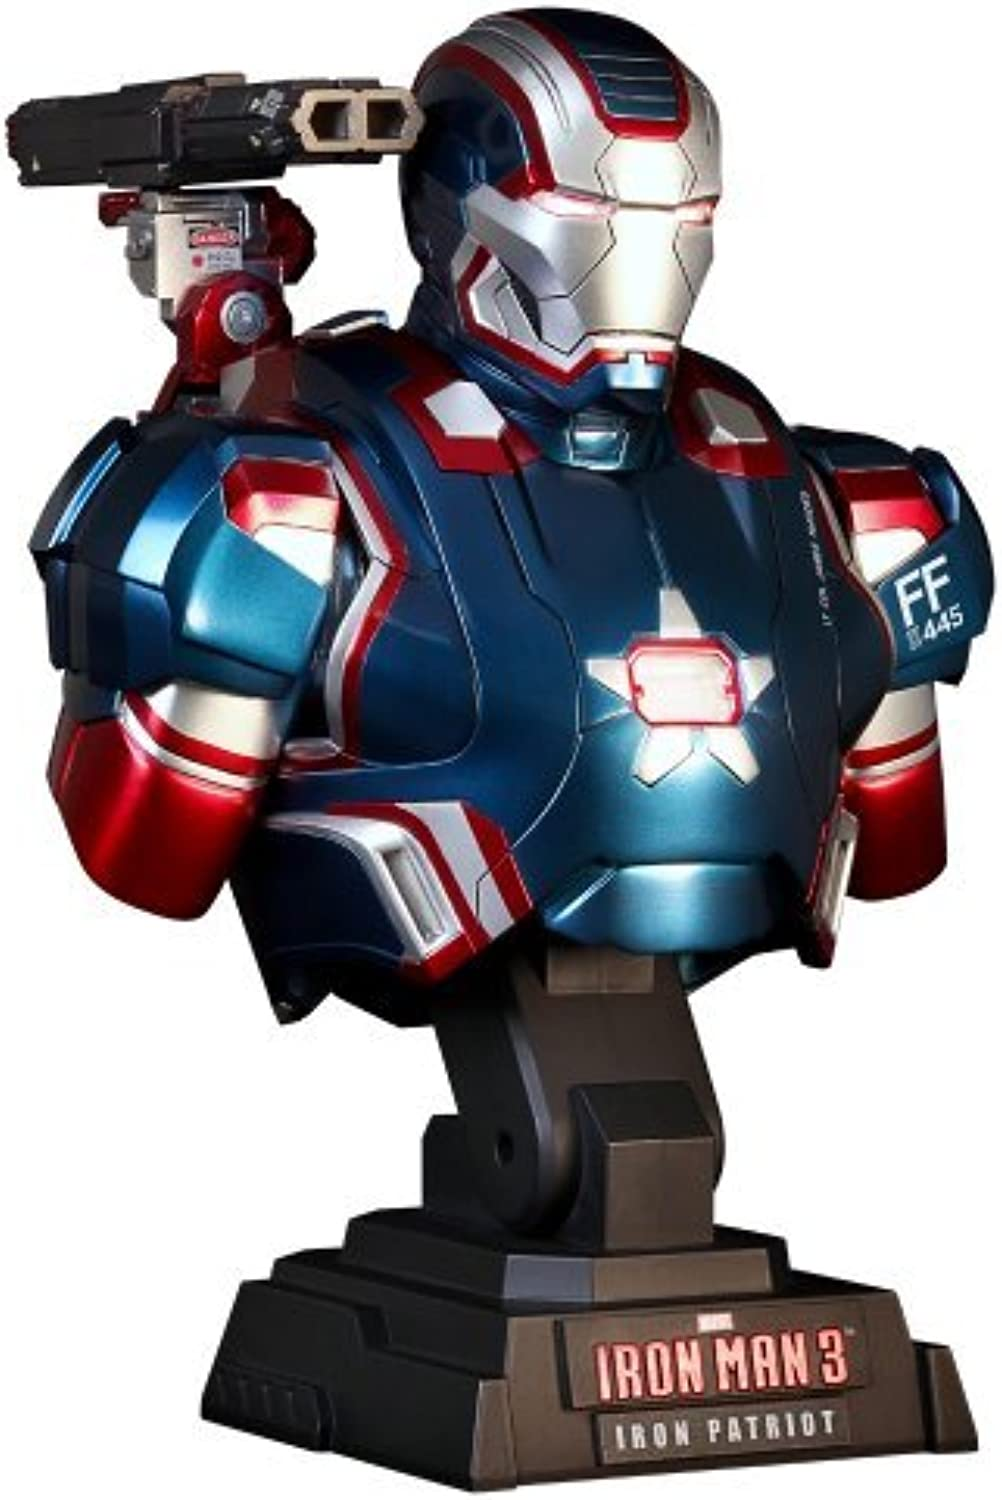 Hot Toys Iron Man 3 IRON PATRIOT 1 4 Scale Bust Figure Marvel's The Avengers by Iron Man